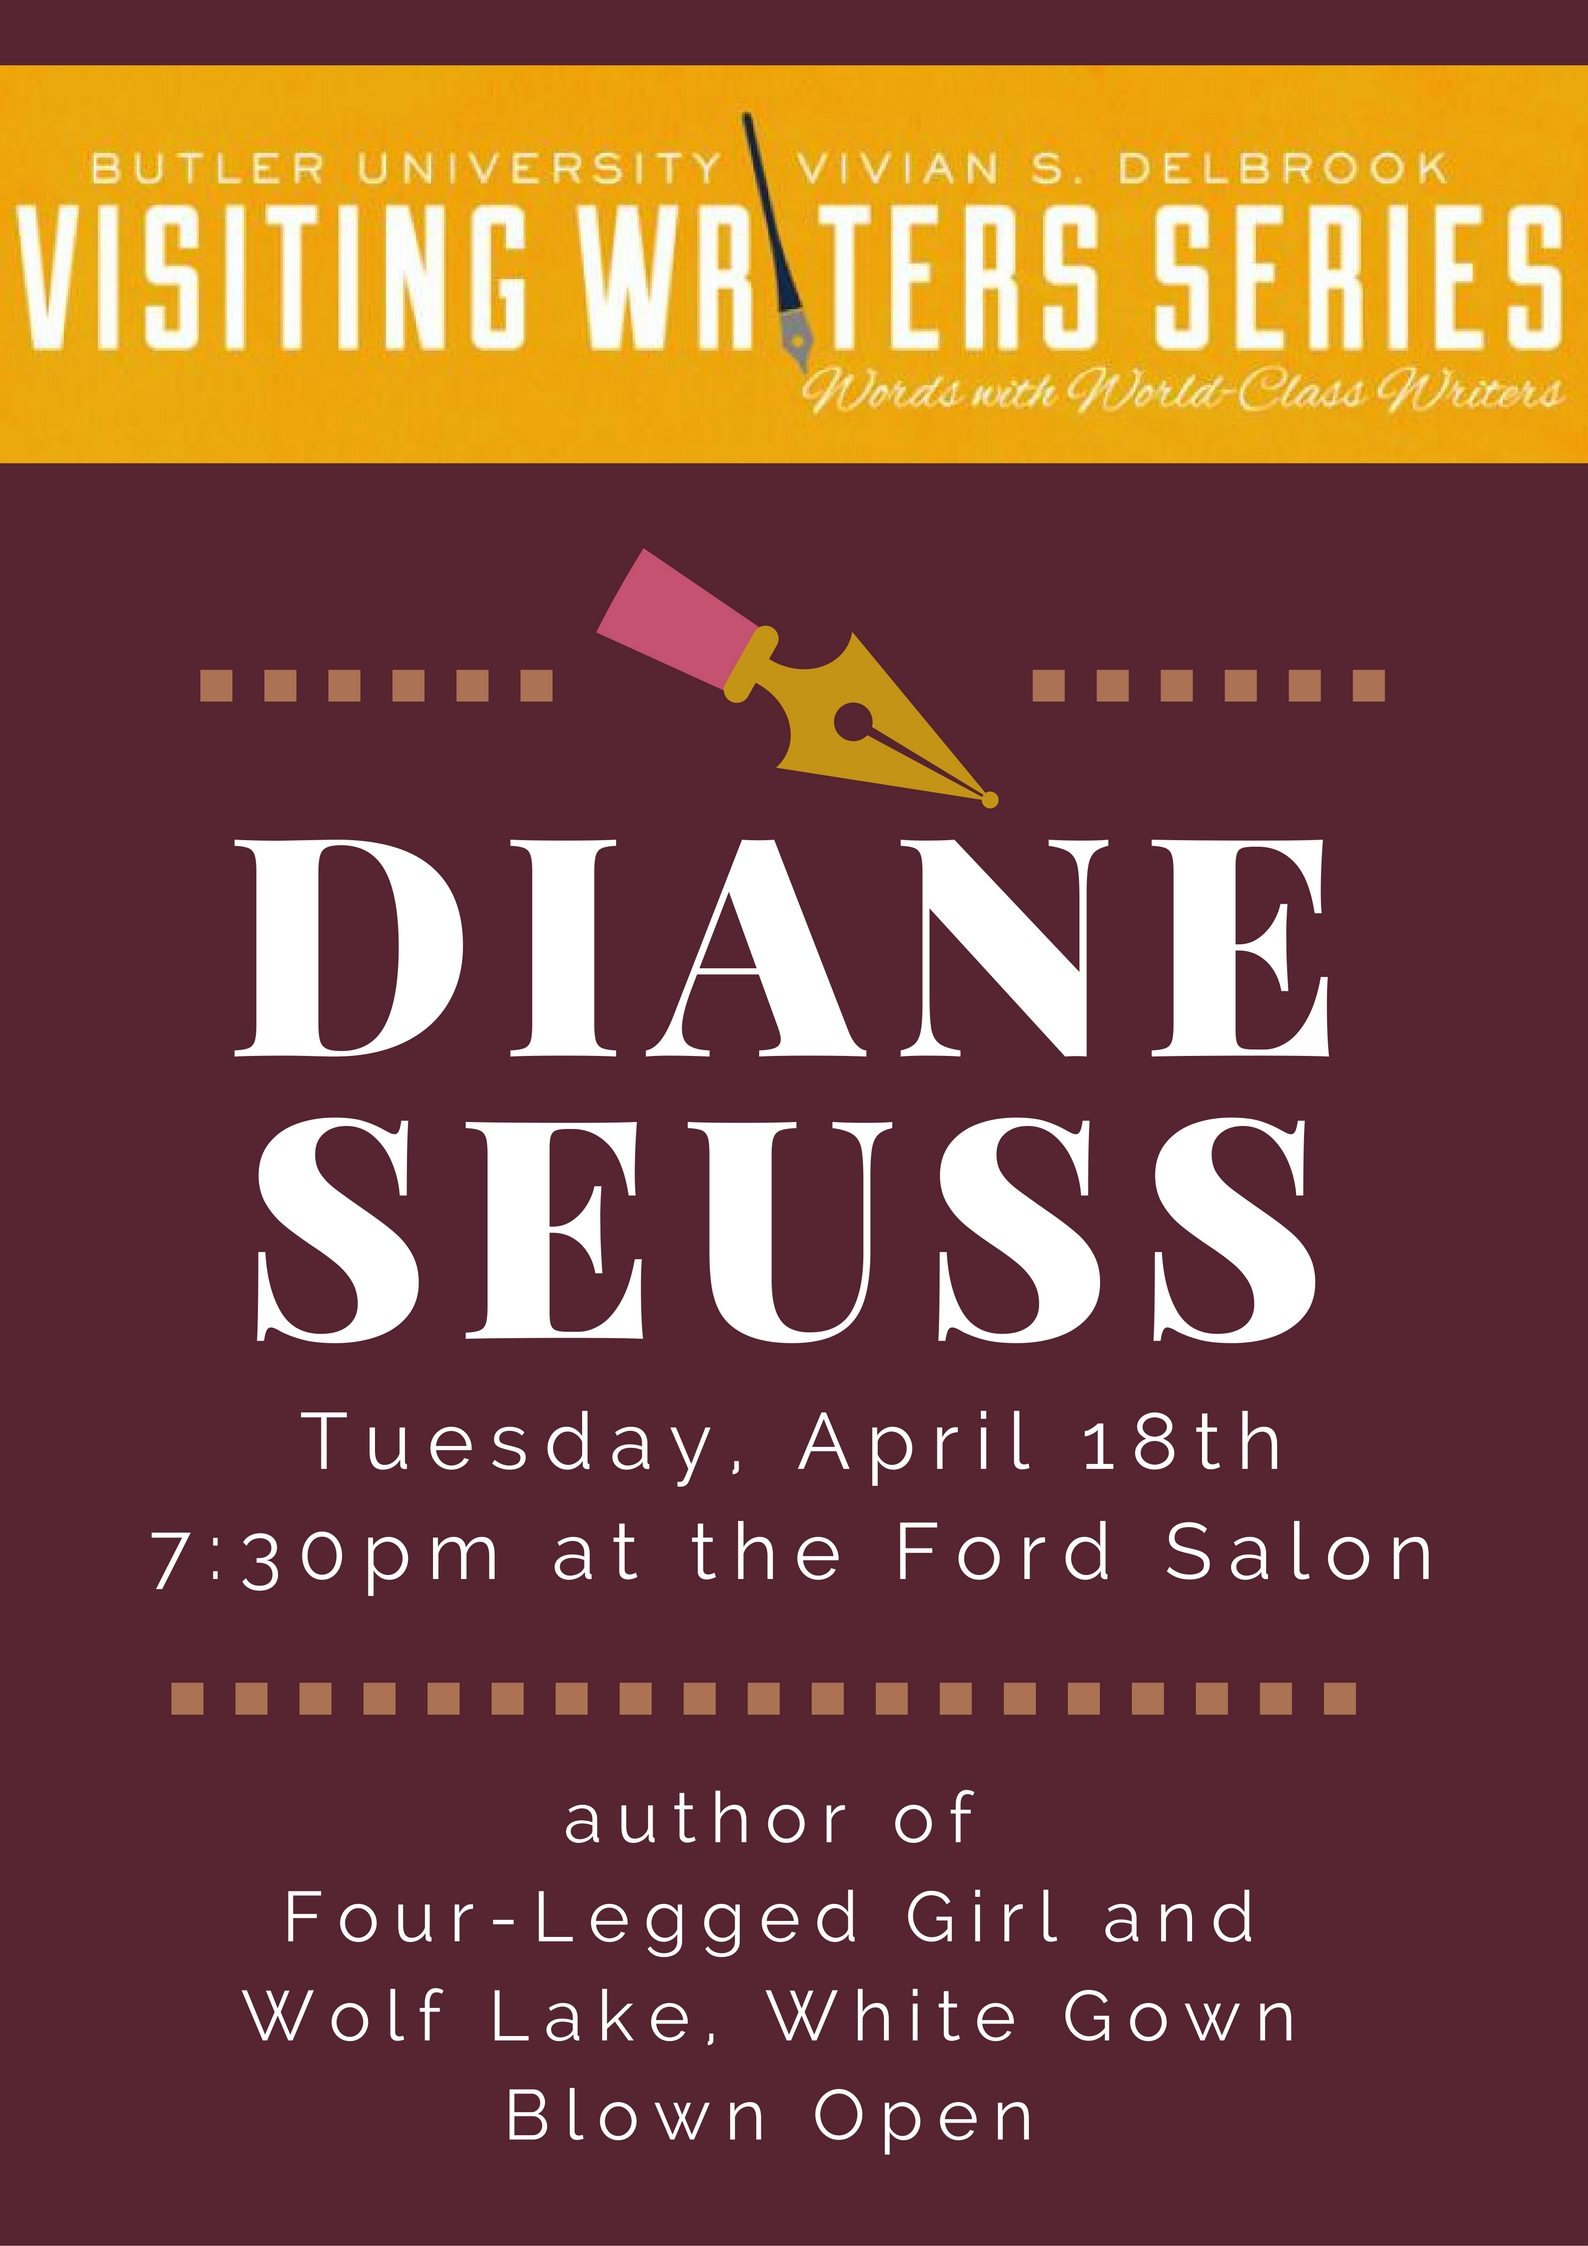 Diane Seuss will be at the Ford Salon on Tuesday, April 18, 2017 at 7:30pm.